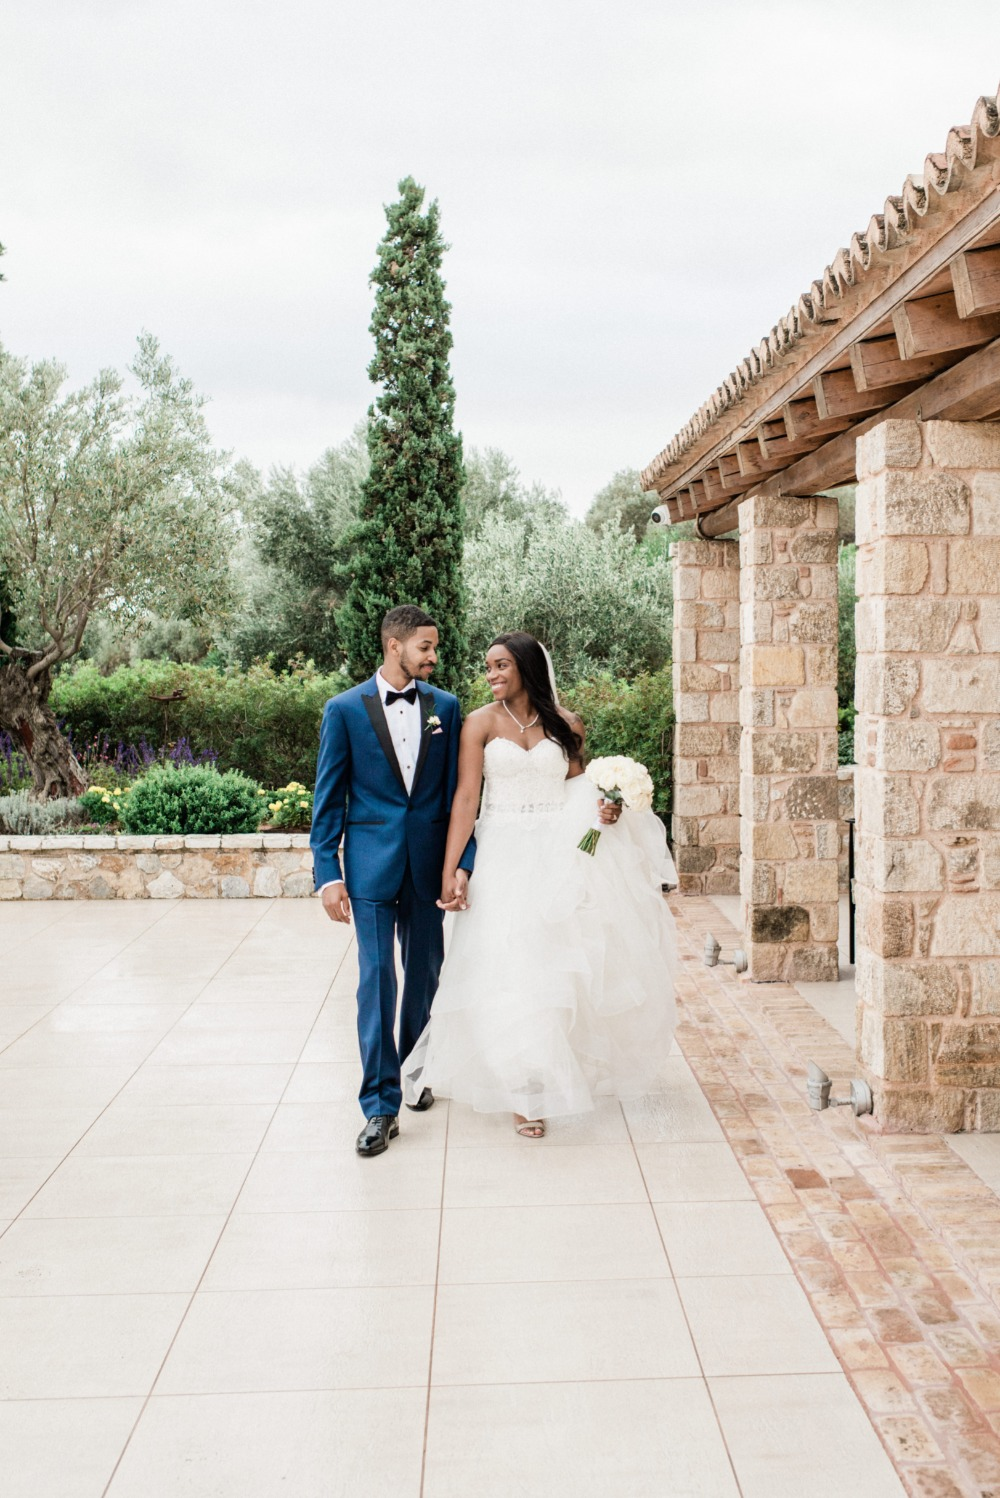 Brenae and Ryan's Romantic Destination Wedding in Greece gallery image 12